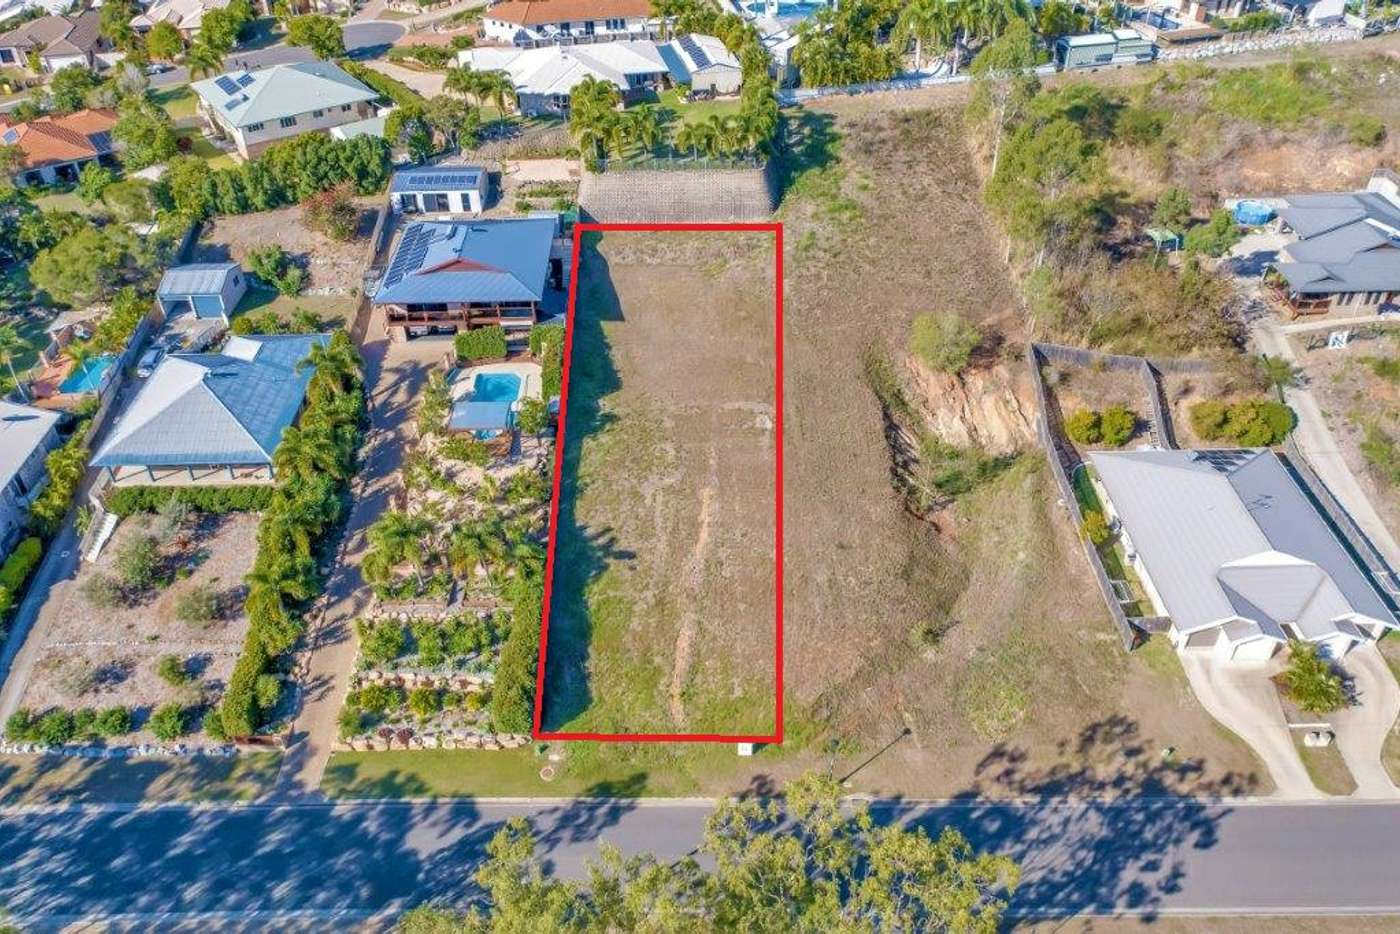 Main view of Homely residentialLand listing, 17 Parsloe Street, Telina QLD 4680